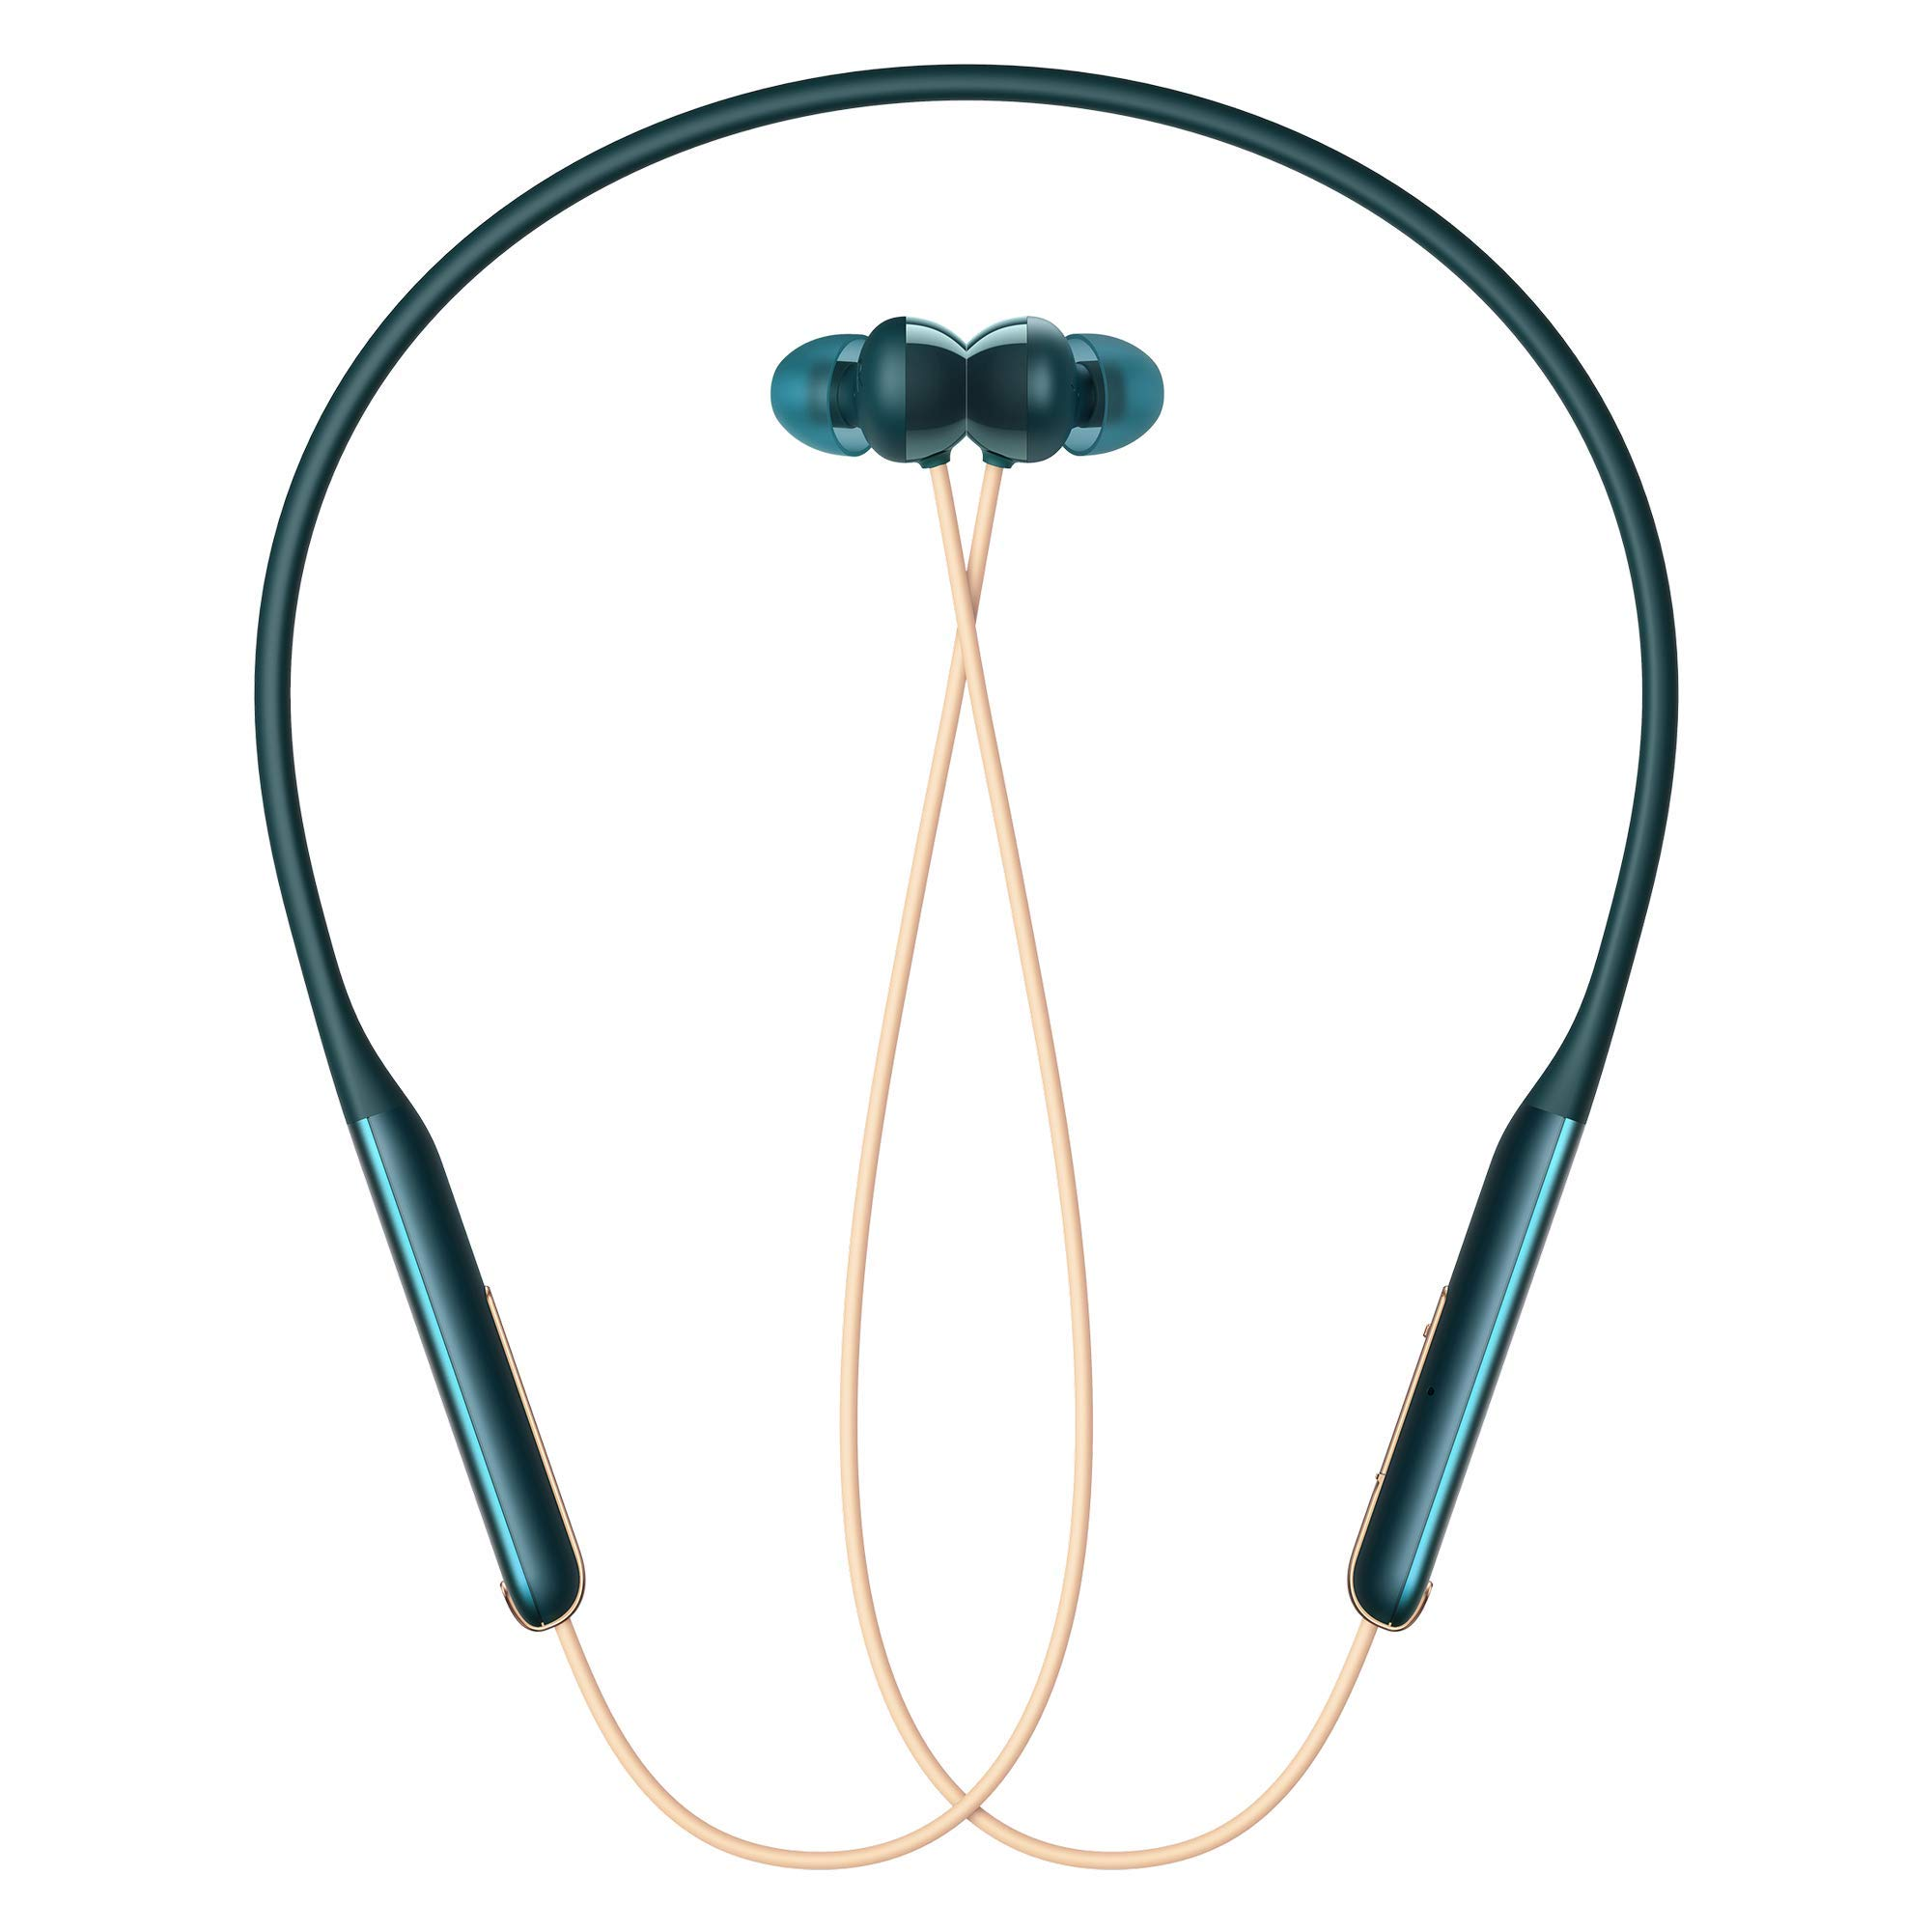 Oppo Enco M31 Wireless In Ear Bluetooth Earphones With Mic Green Buy Online In Fiji Oppo Products In Fiji See Prices Reviews And Free Delivery Over 200 Fj Desertcart